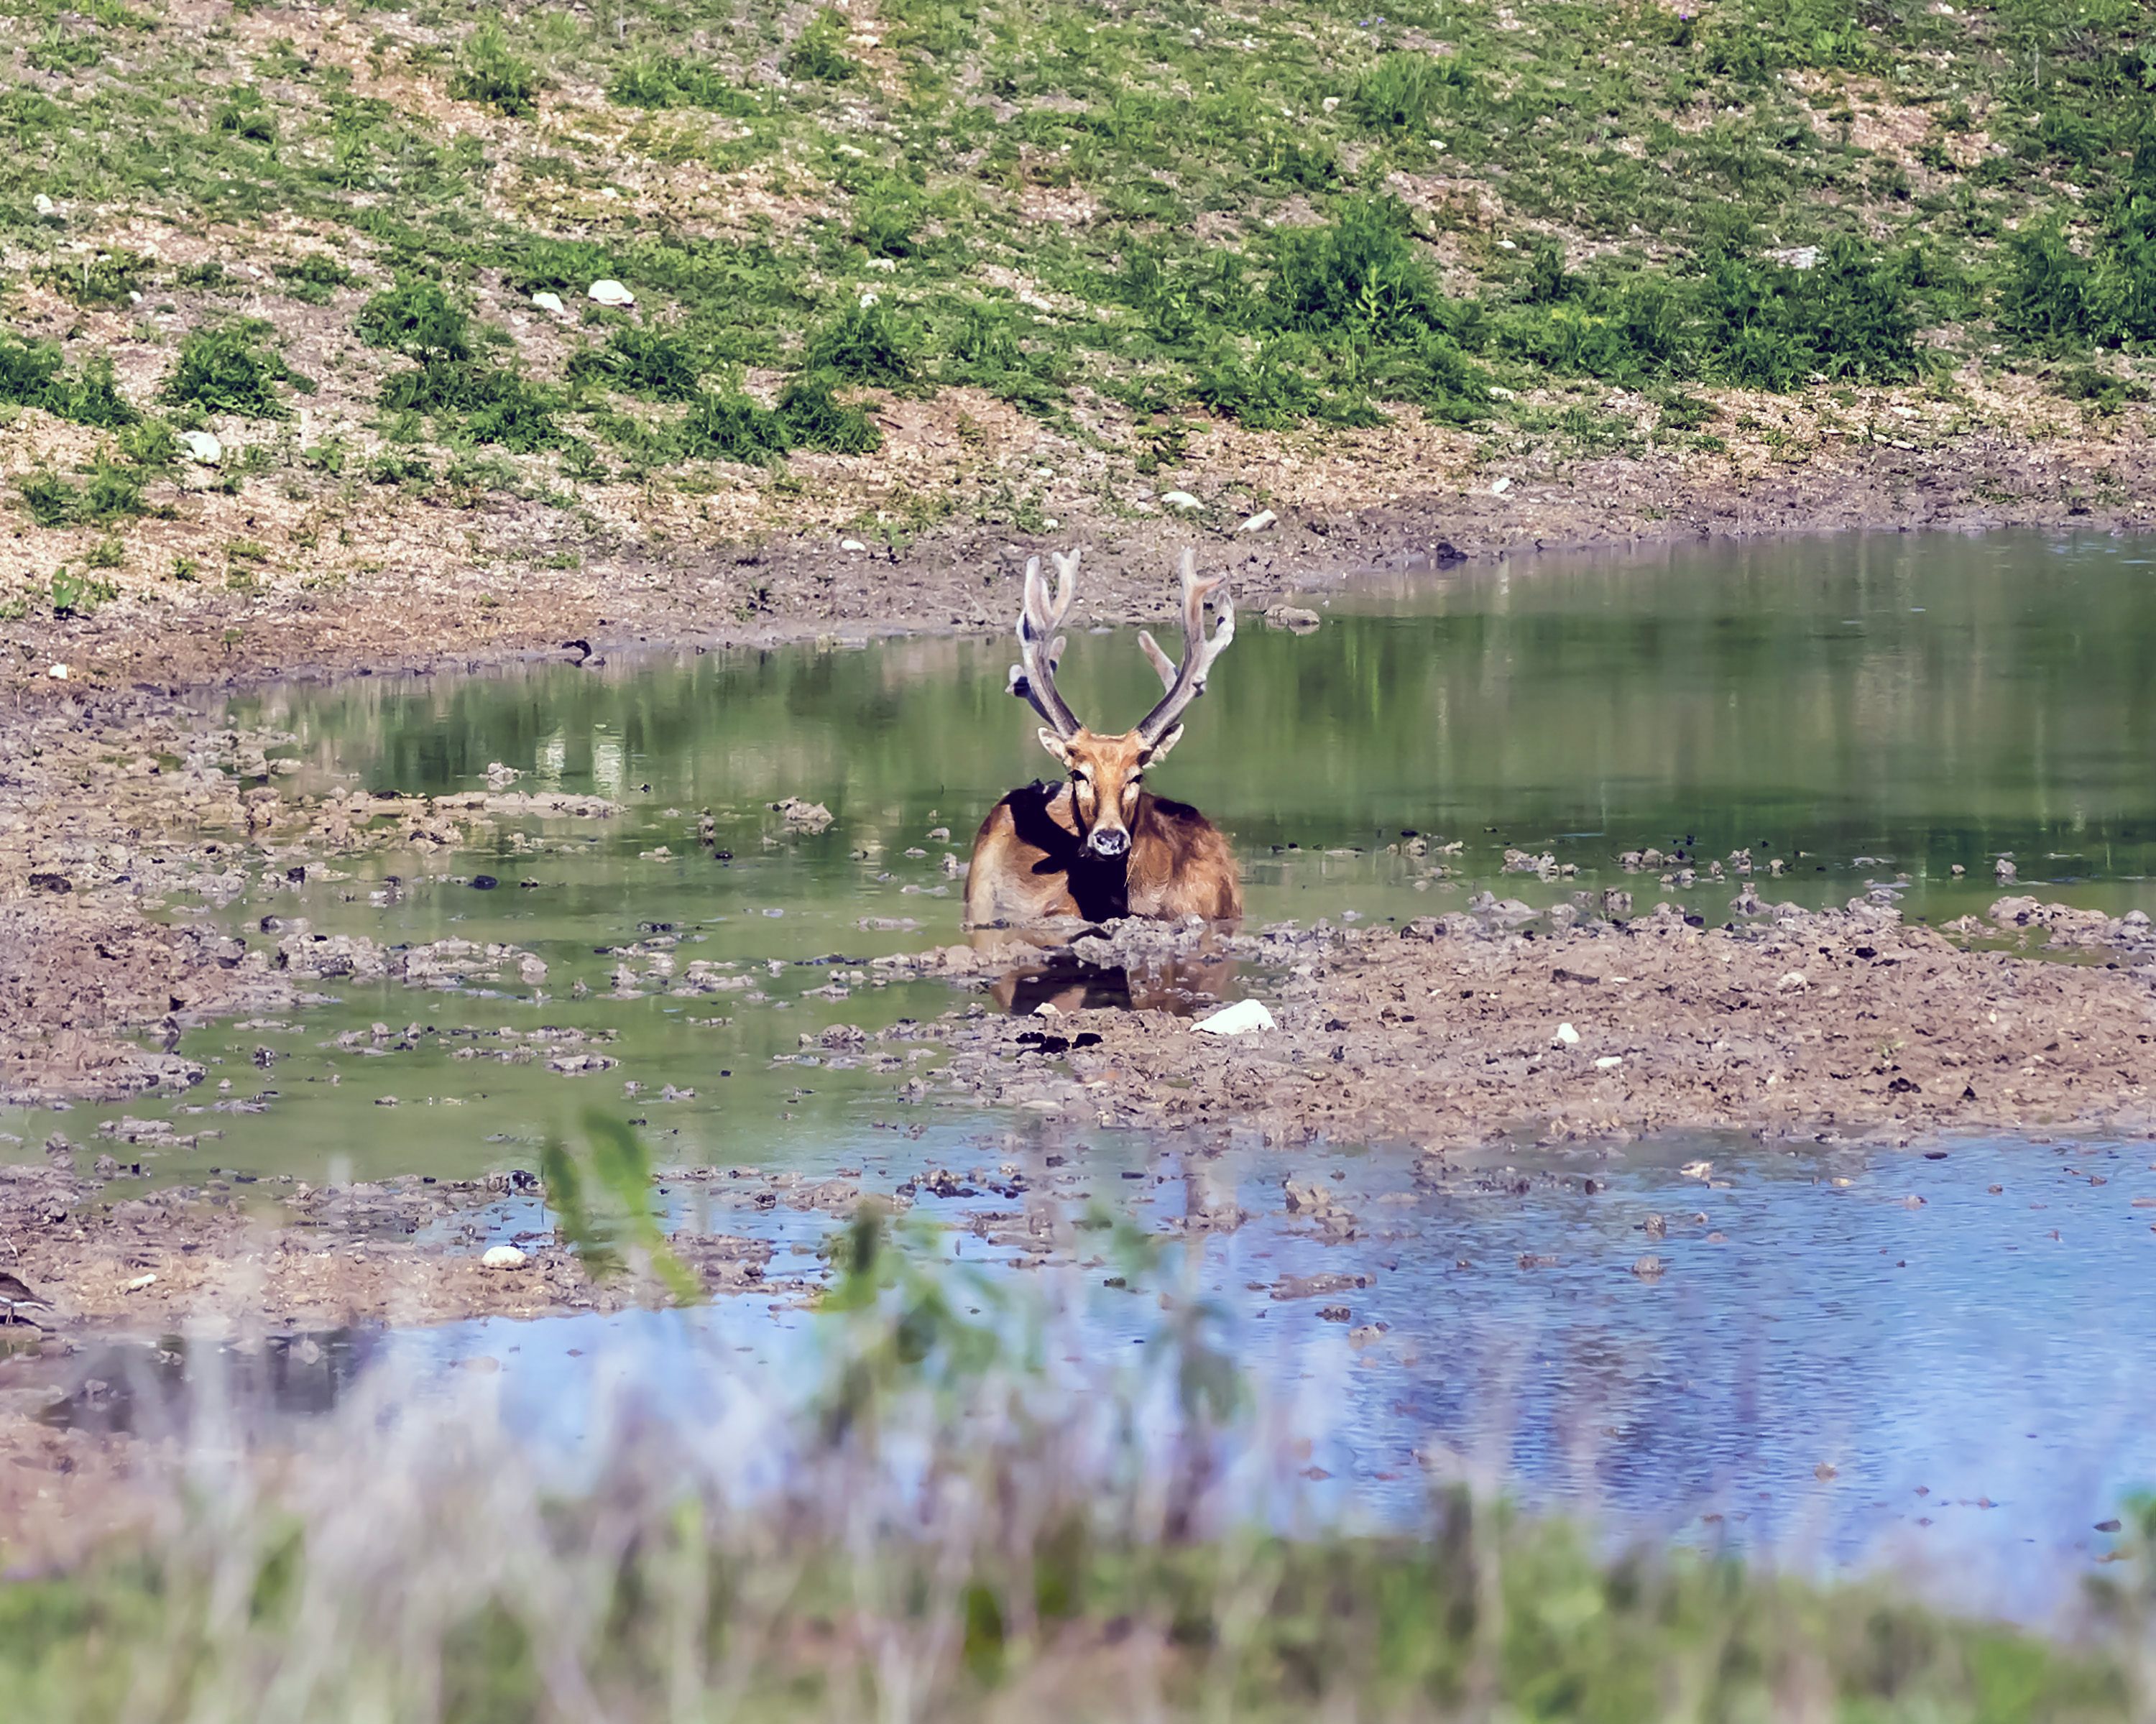 exotic deer with large antlers taking a swim in a pond